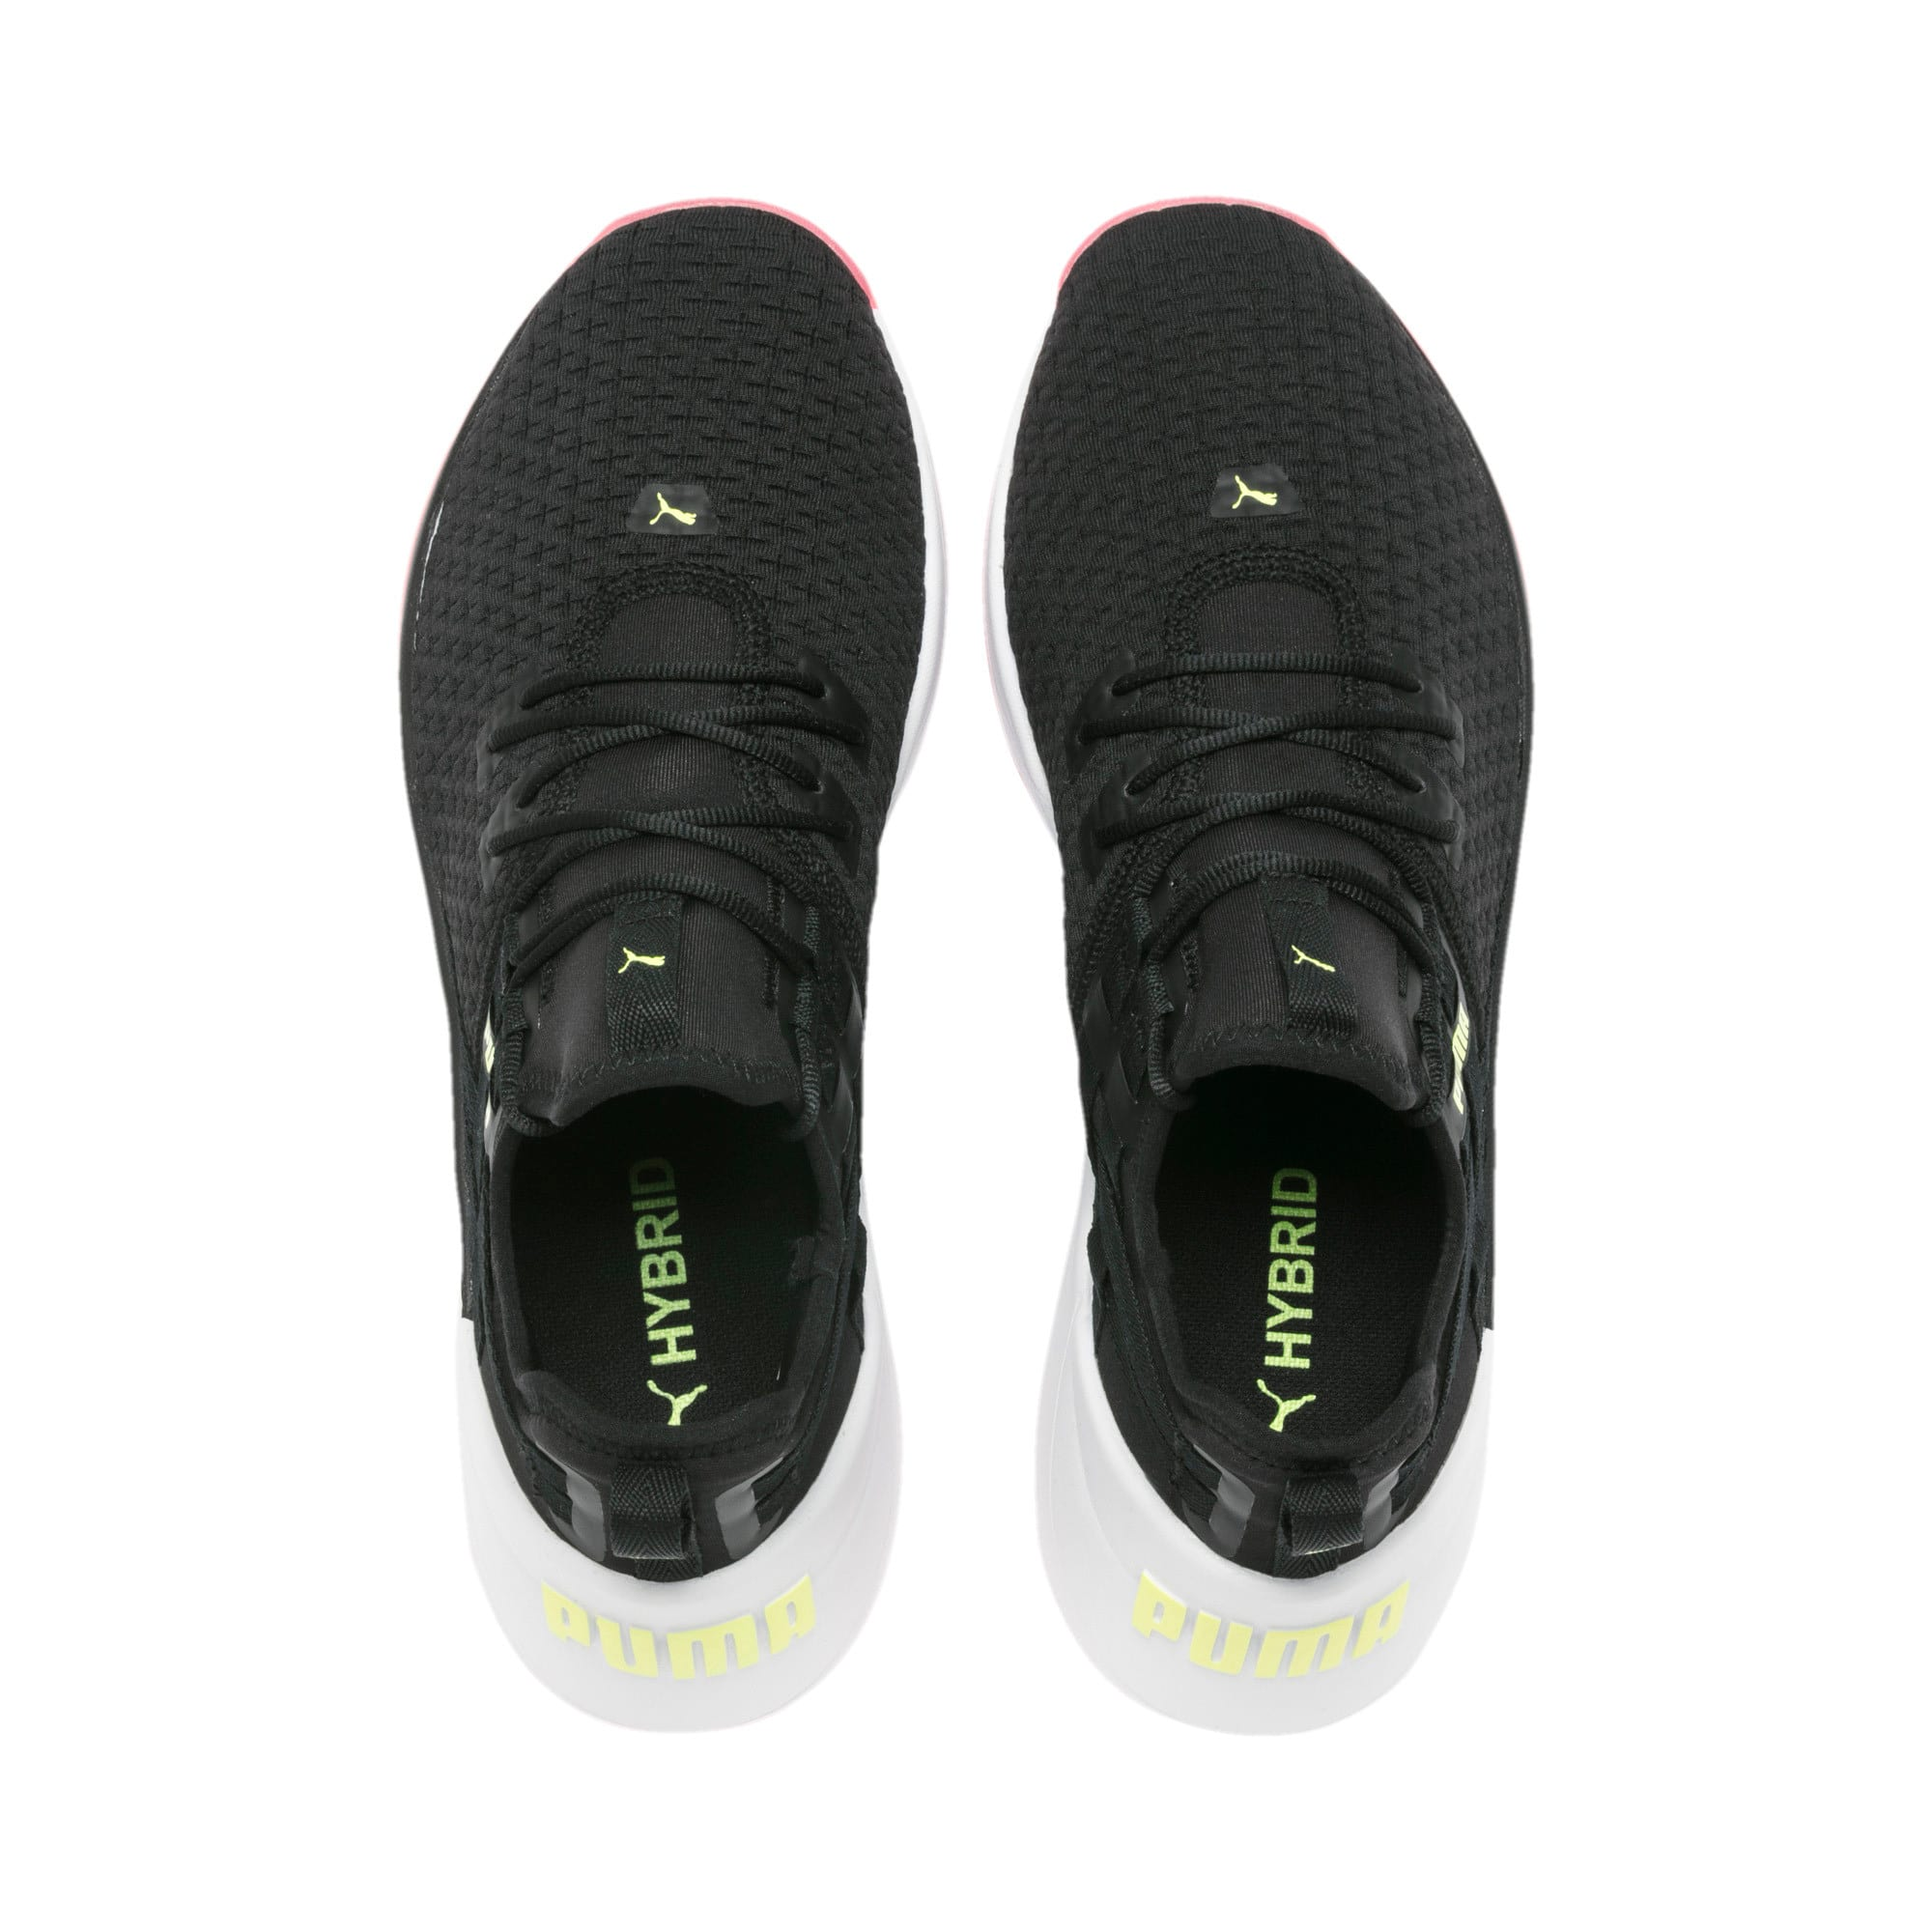 Thumbnail 8 of Jaab XT Women's Training Trainers, Puma Black-Puma White, medium-IND